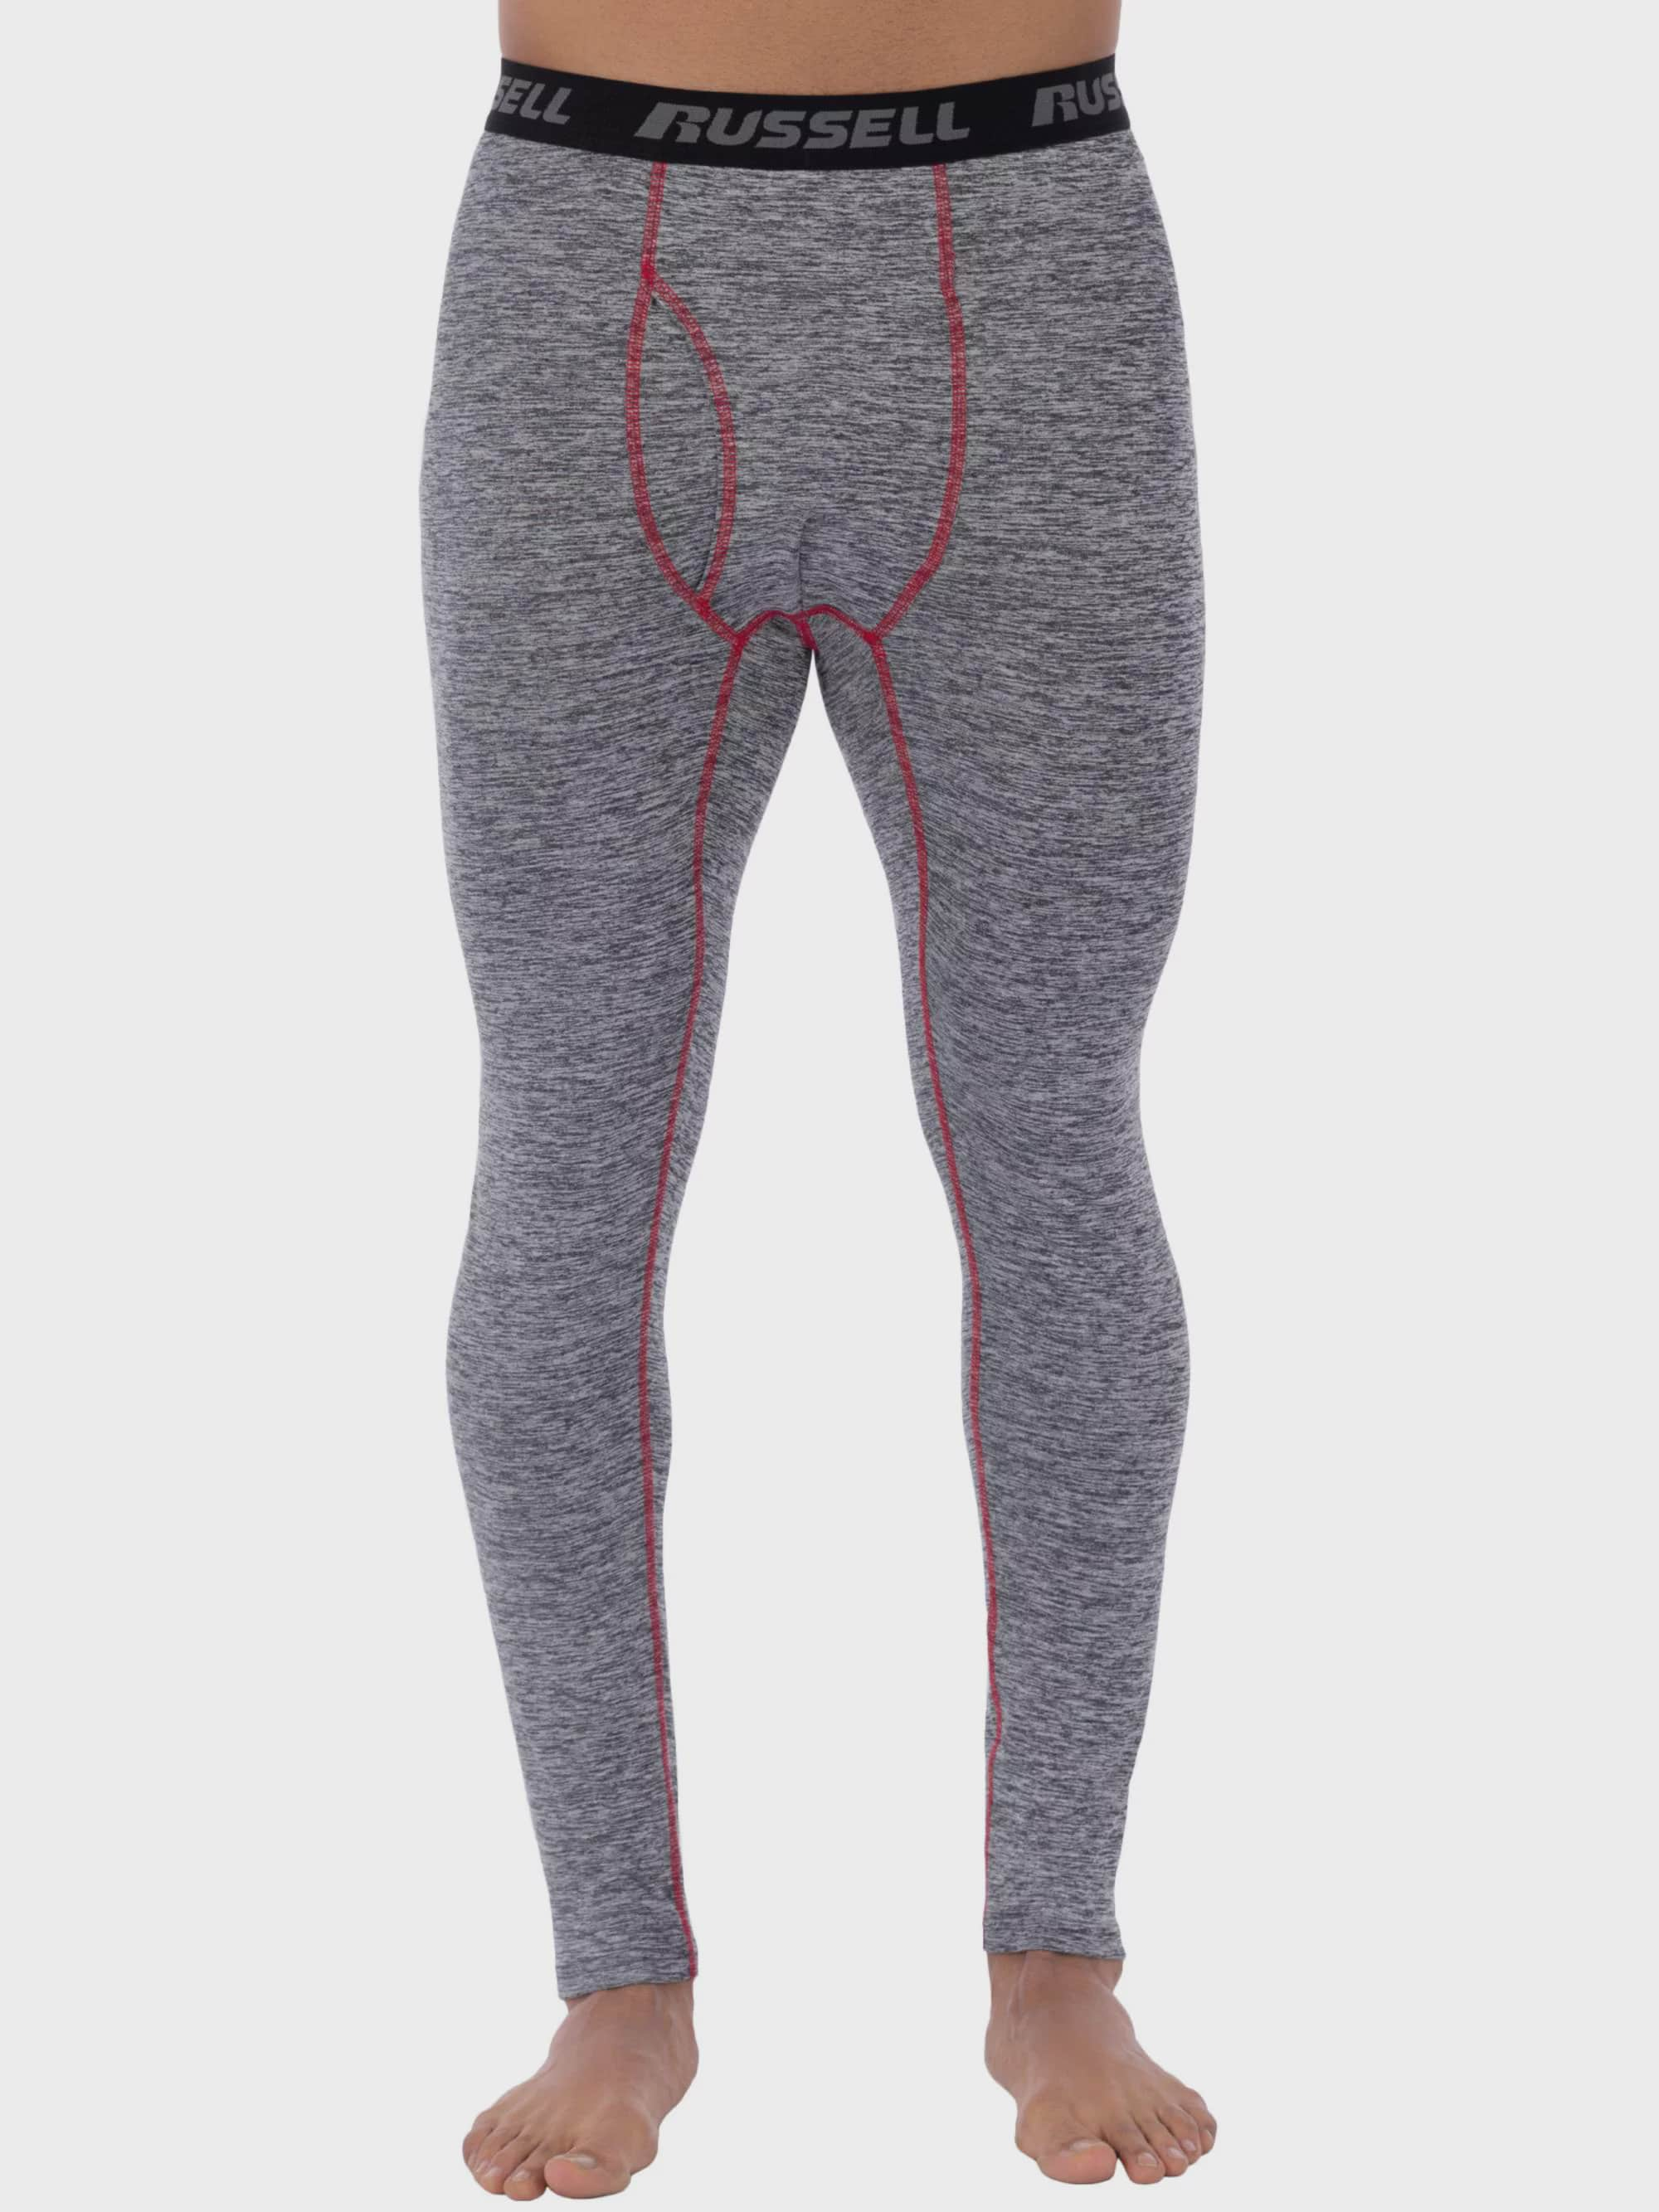 0a4280b3177a15 Russell - Russell Mens L2 Active BaseLayer Thermal Pant - Walmart.com